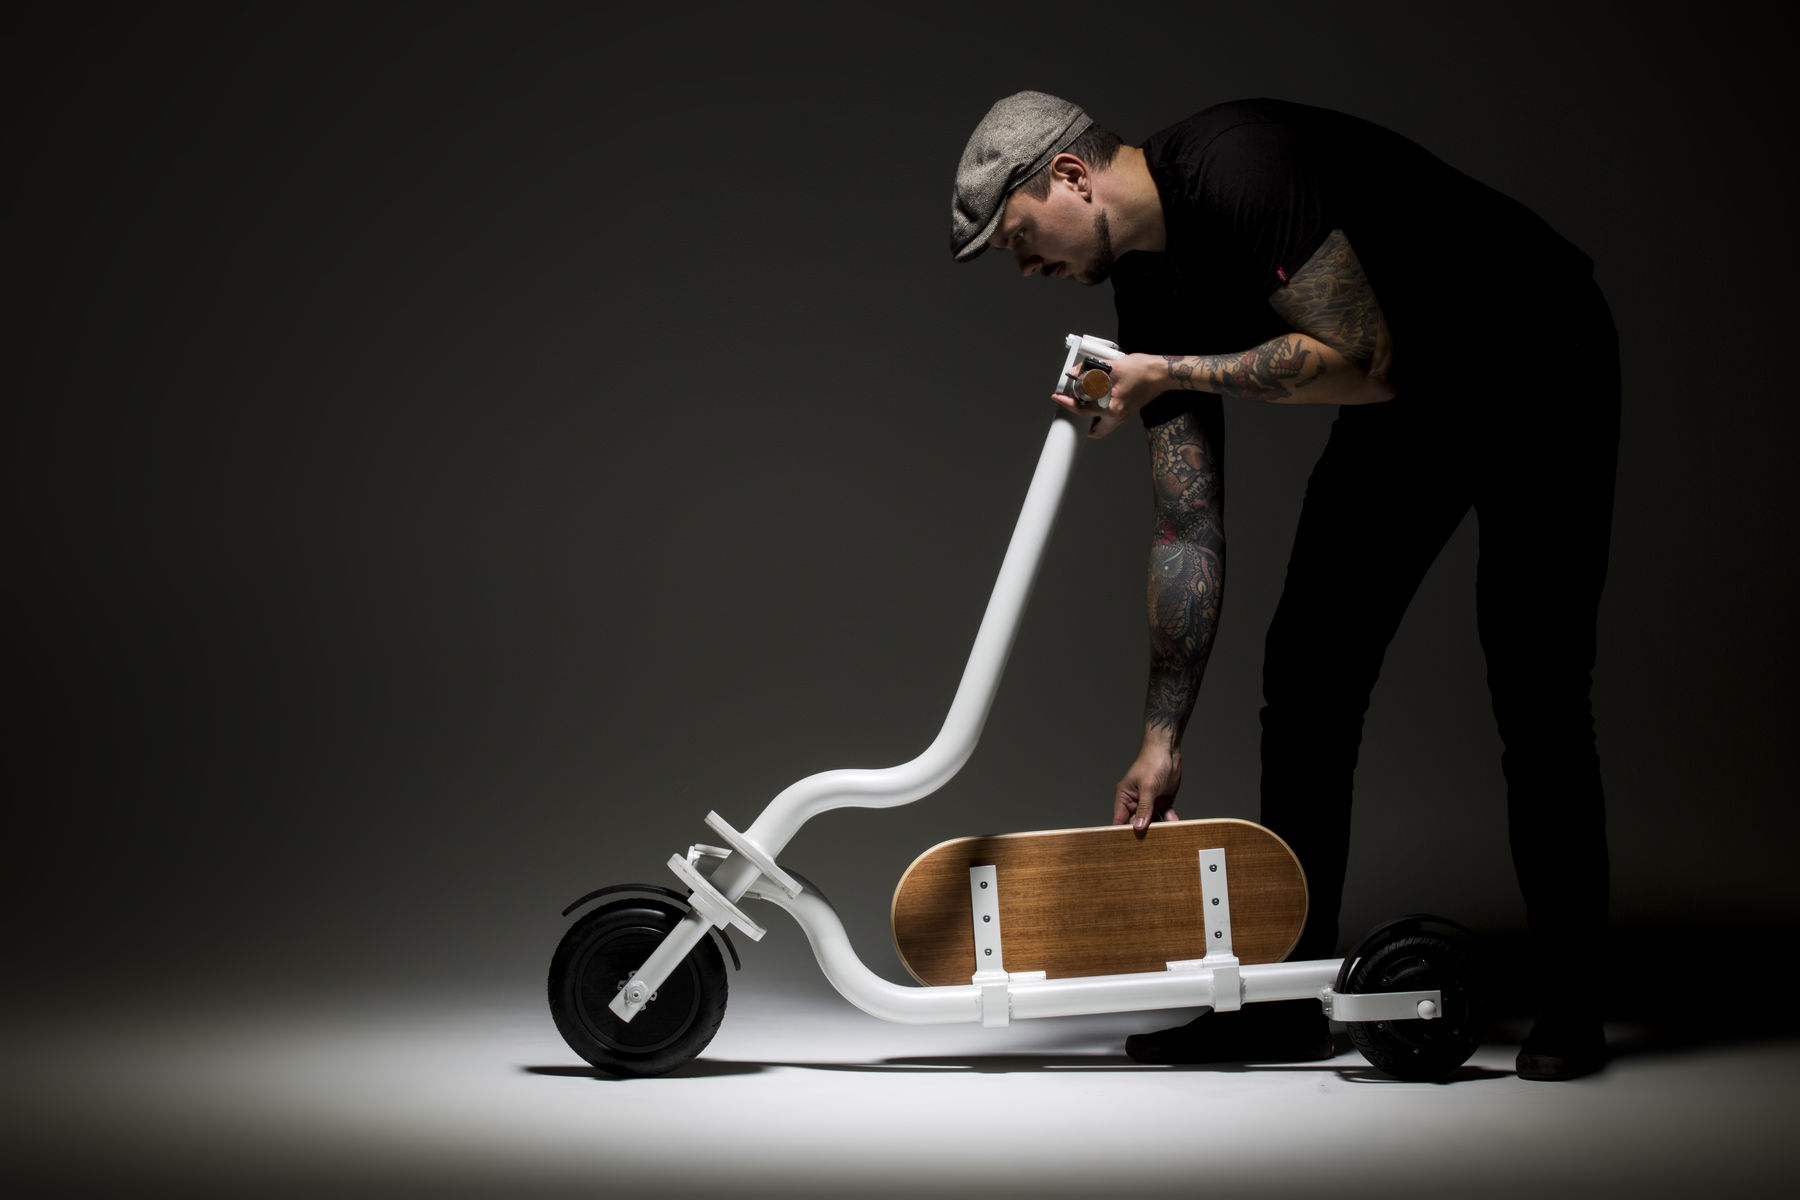 Foldable Flip scoot designed by Jukka Jokinen